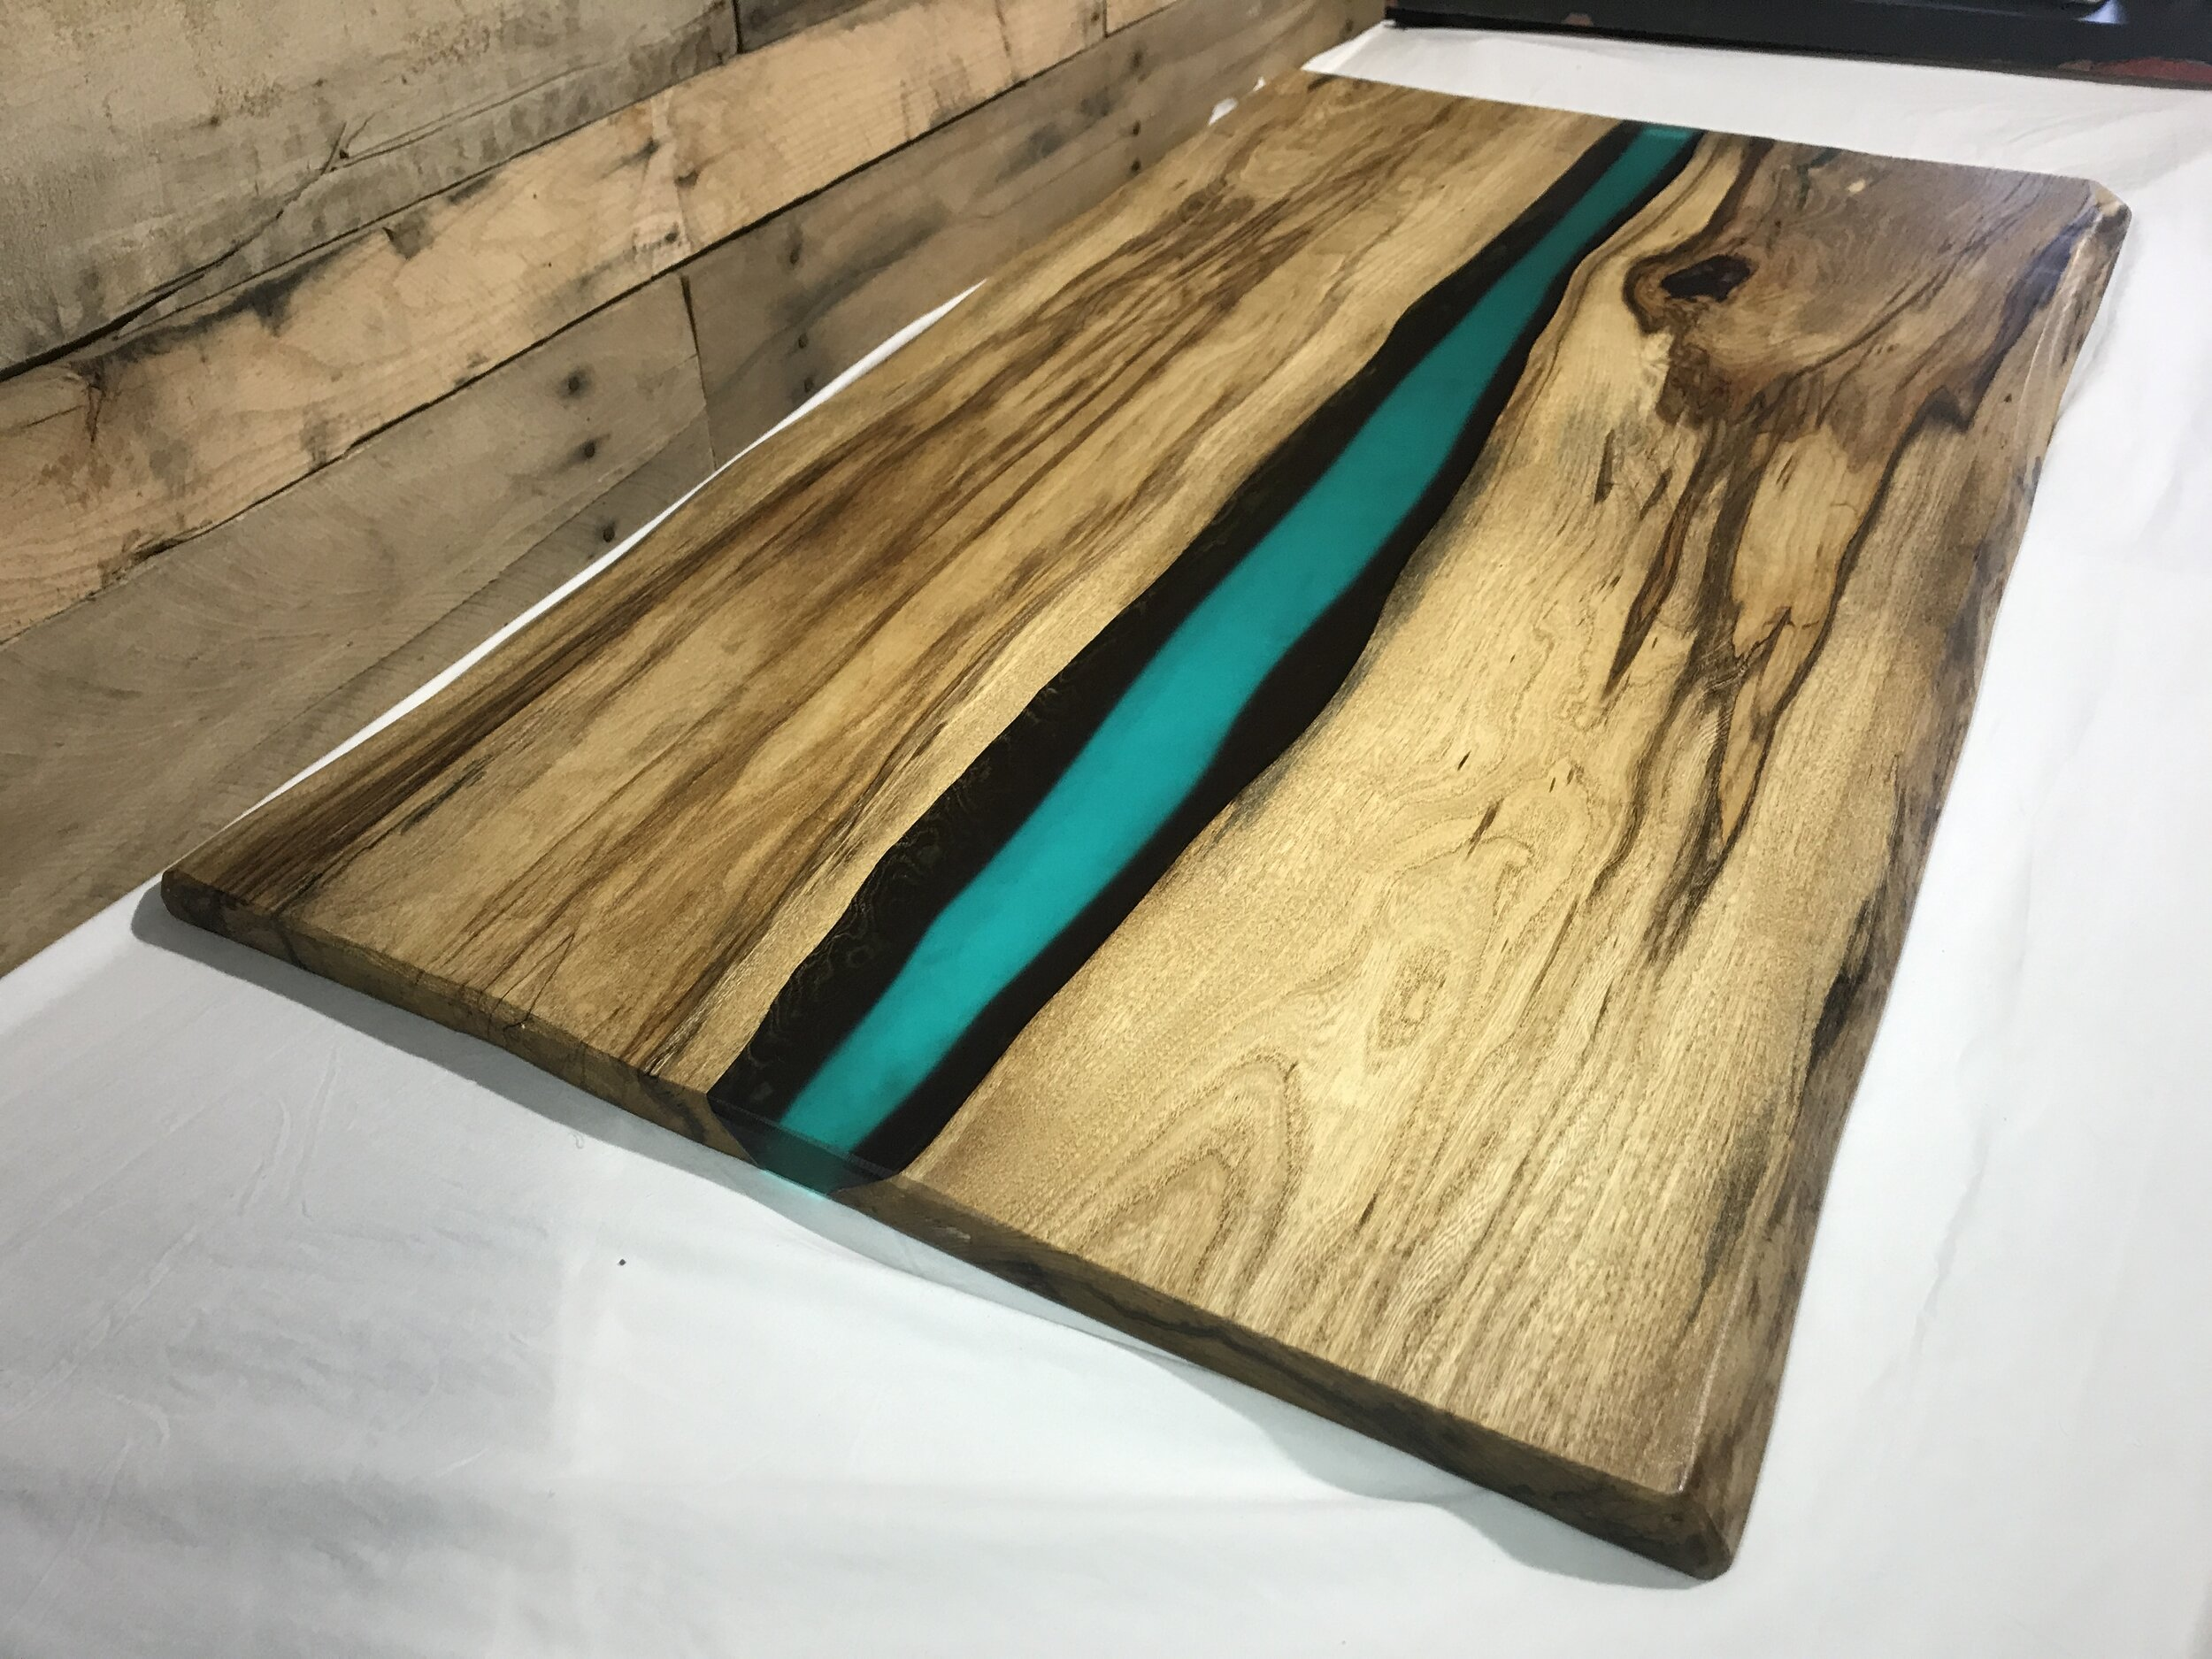 Picture of: Coffee Table Live Edge Hackberry Slab Blue Green Epoxy Resin River Table Omni Artis